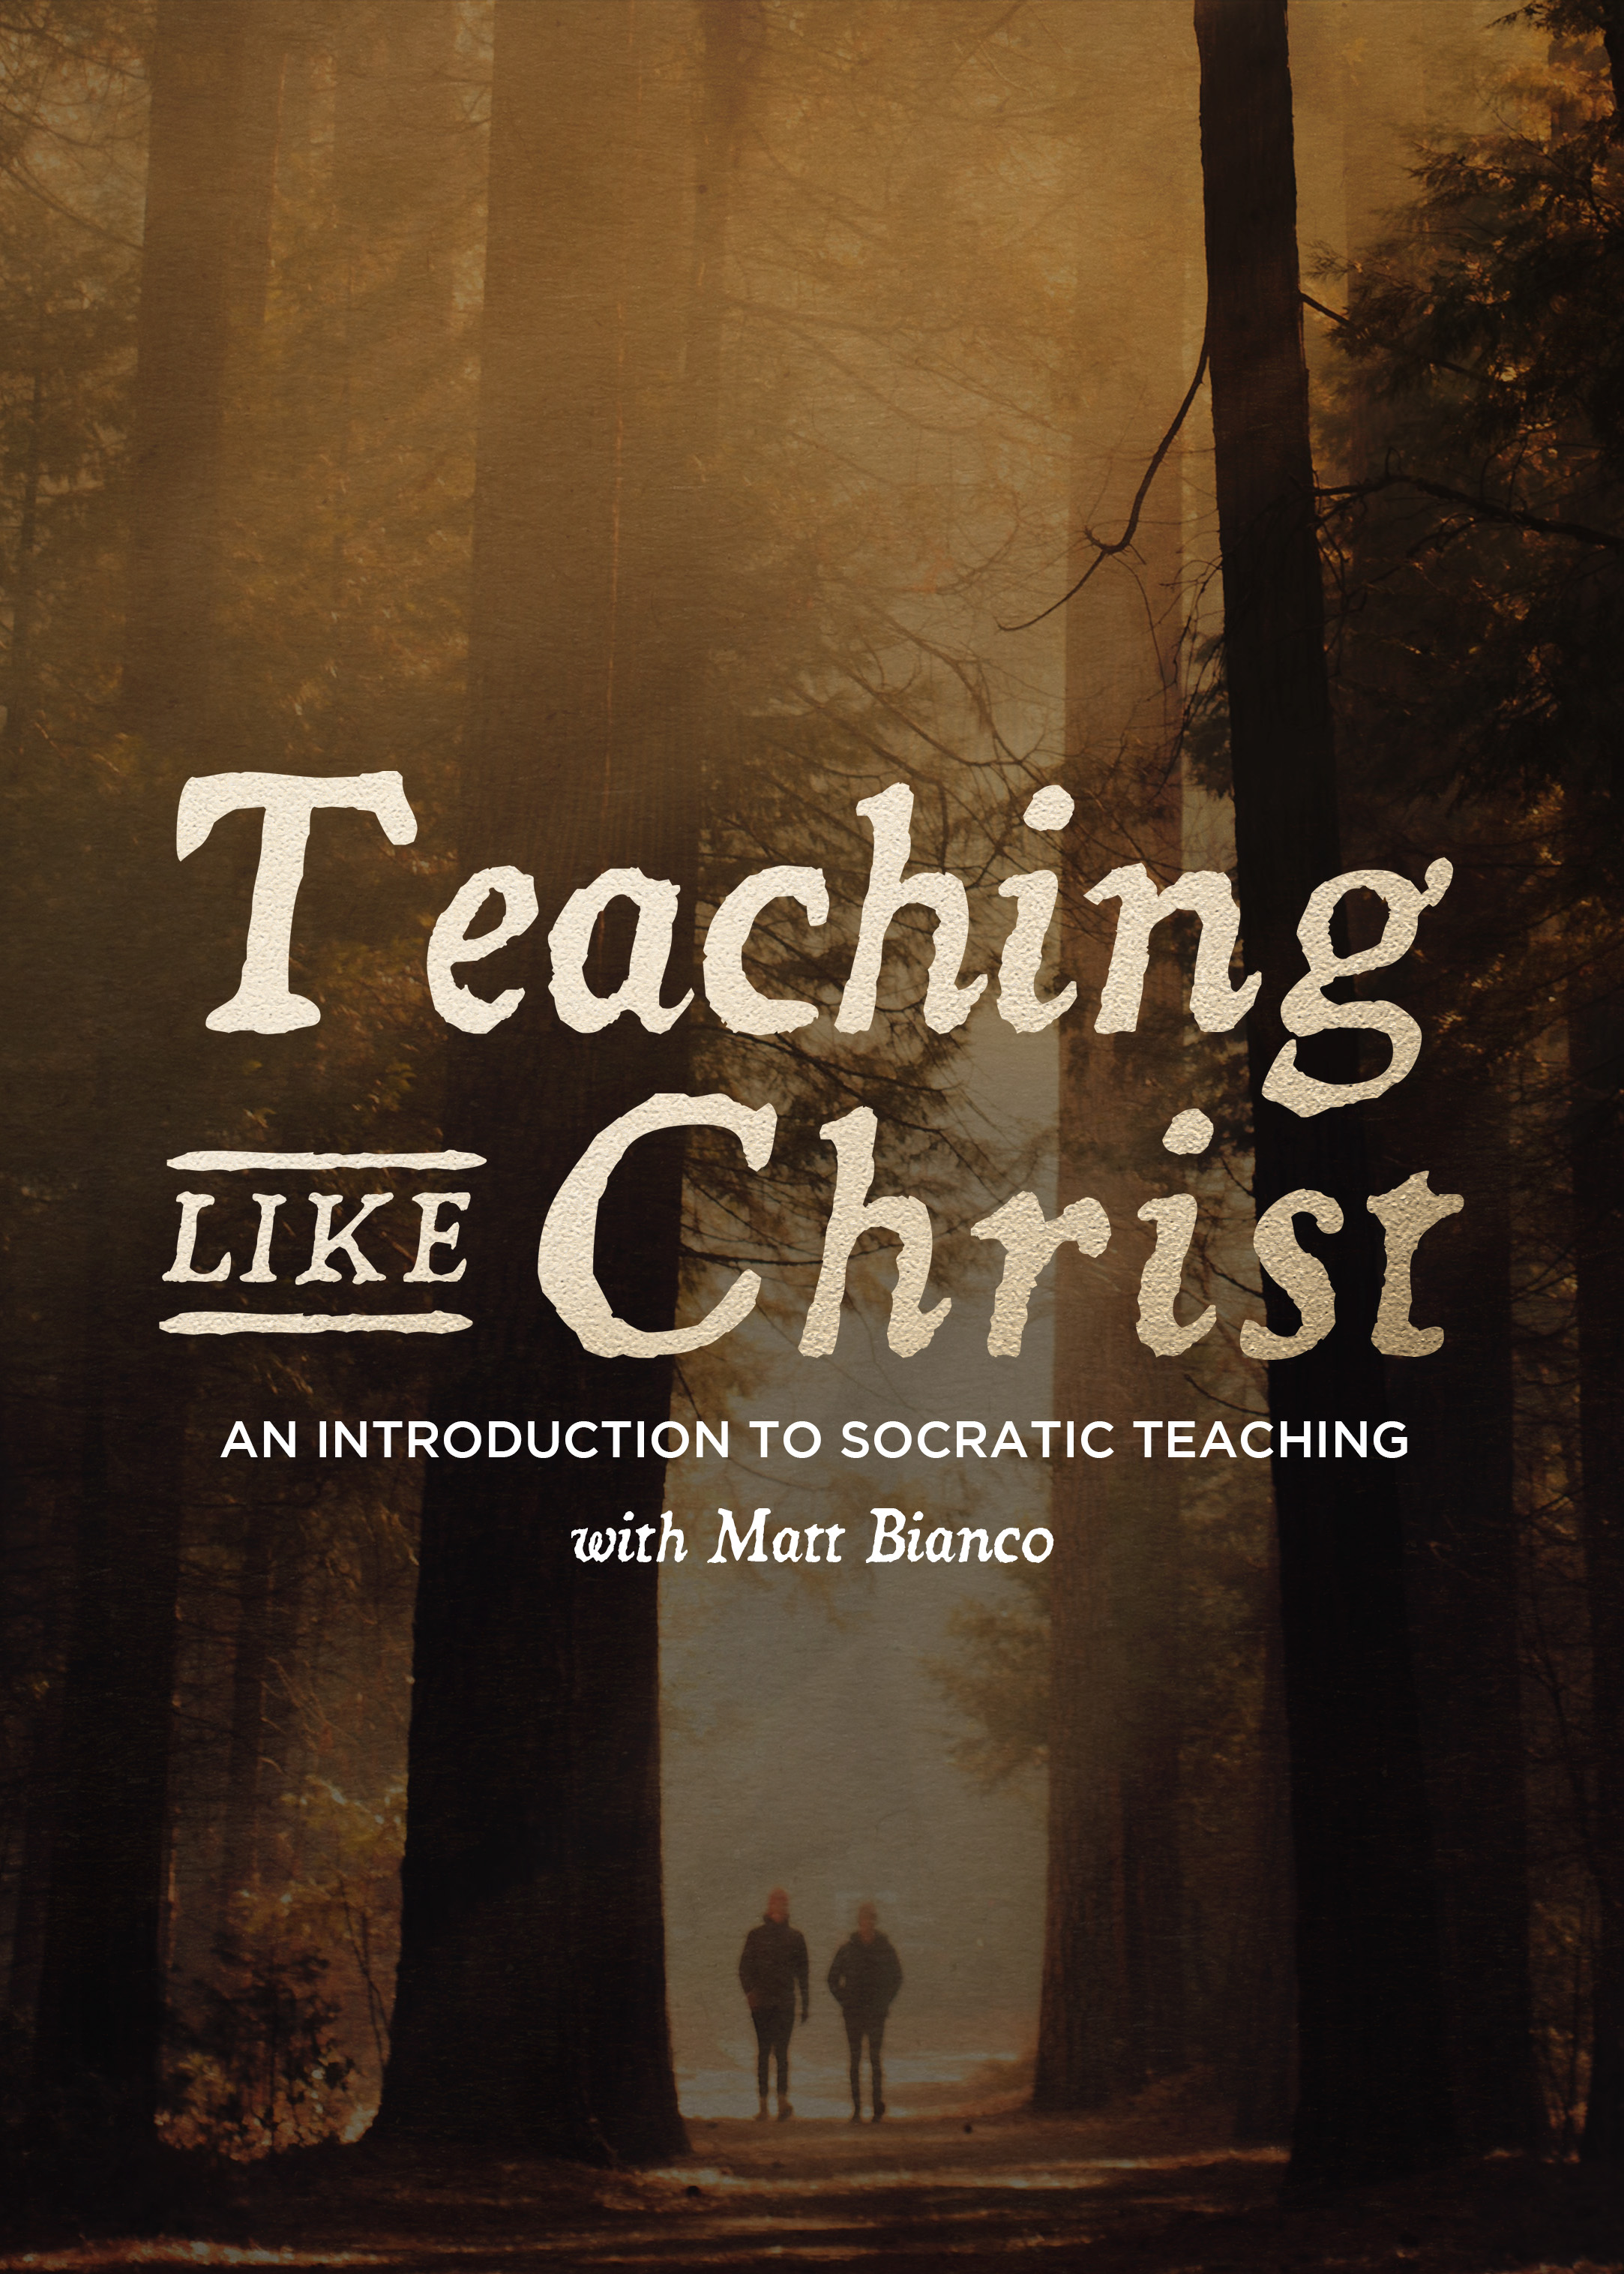 Teaching Like Christ: Socratic Introduction - Webinar Recording